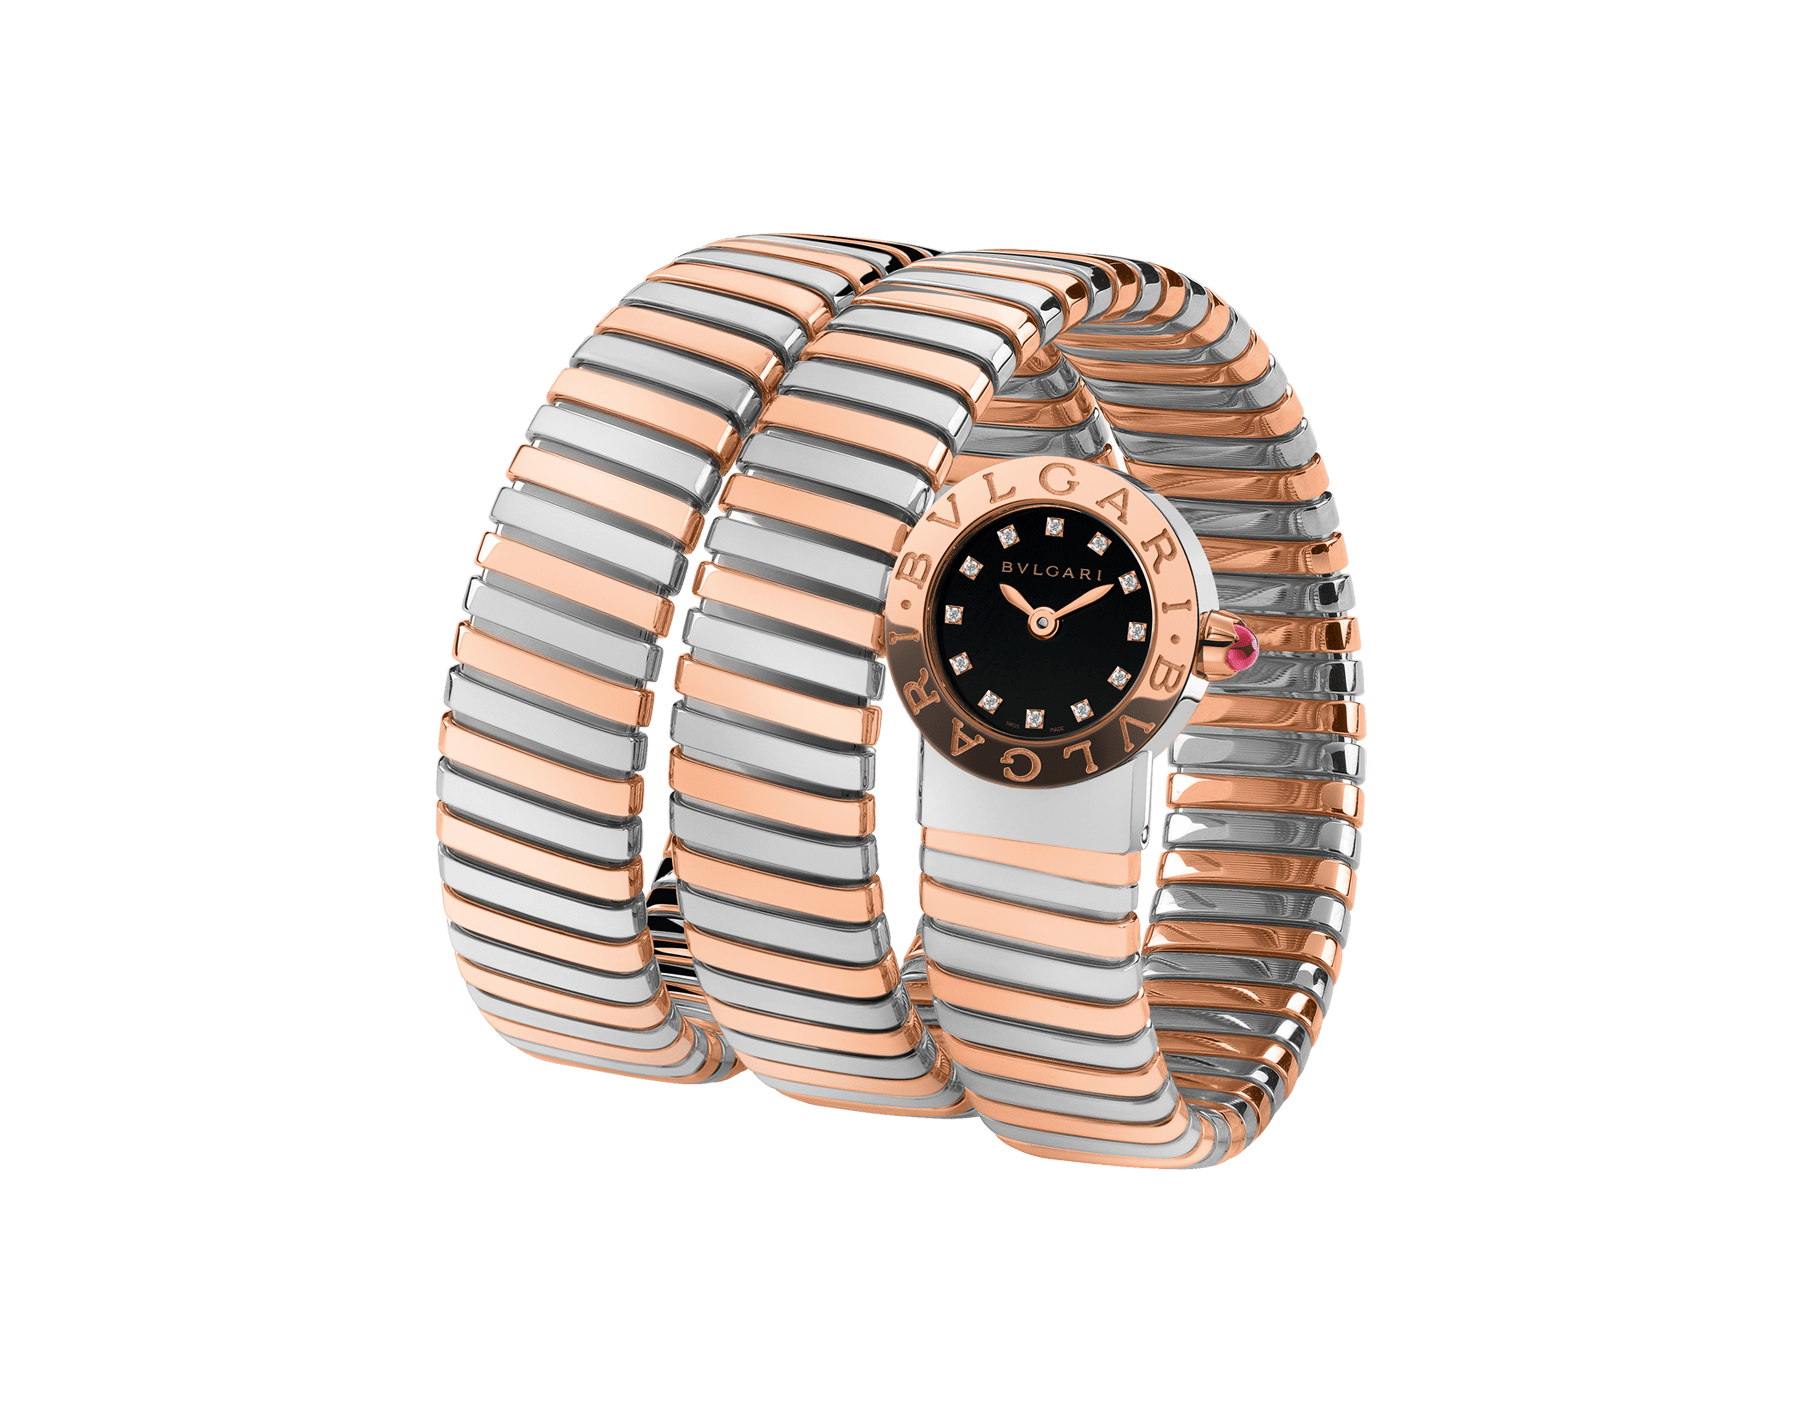 BVLGARI BVLGARI Tubogas watch in stainless steel and 18 kt rose gold case and double spiral bracelet, with black lacquered dial and diamond indexes 102496 image 1